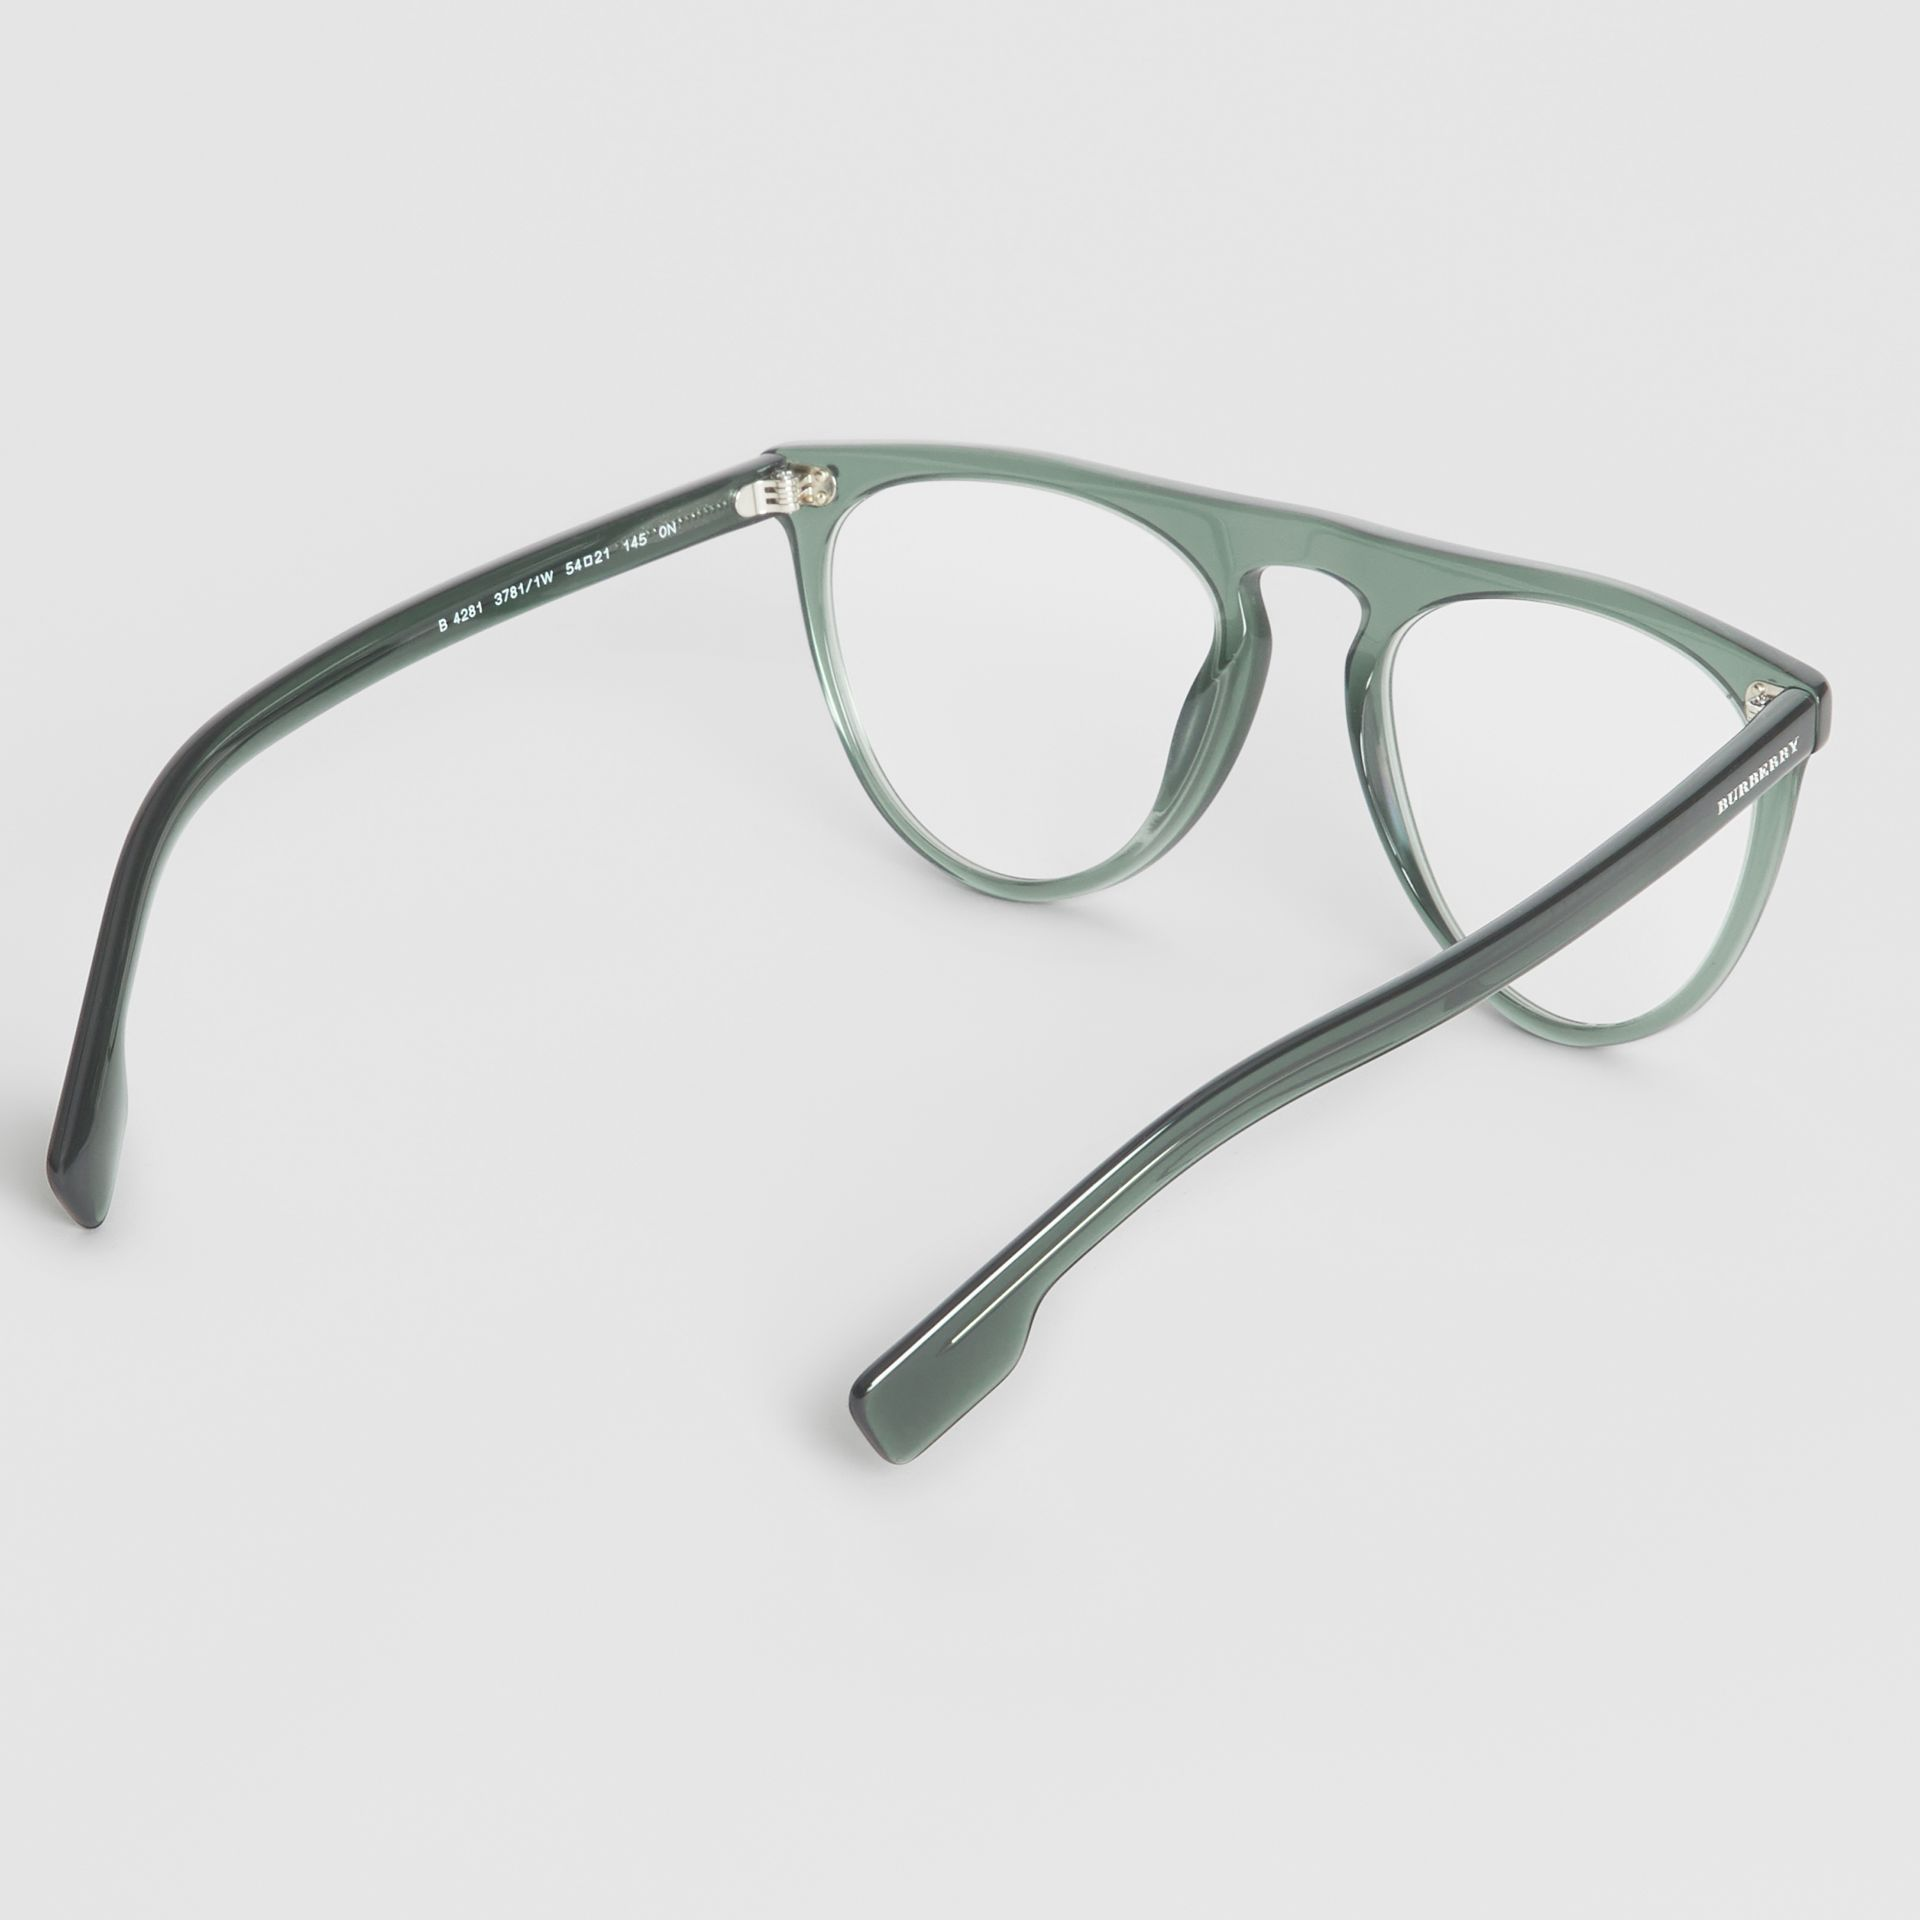 Keyhole D-shaped Optical Frames in Green - Men | Burberry United Kingdom - gallery image 4